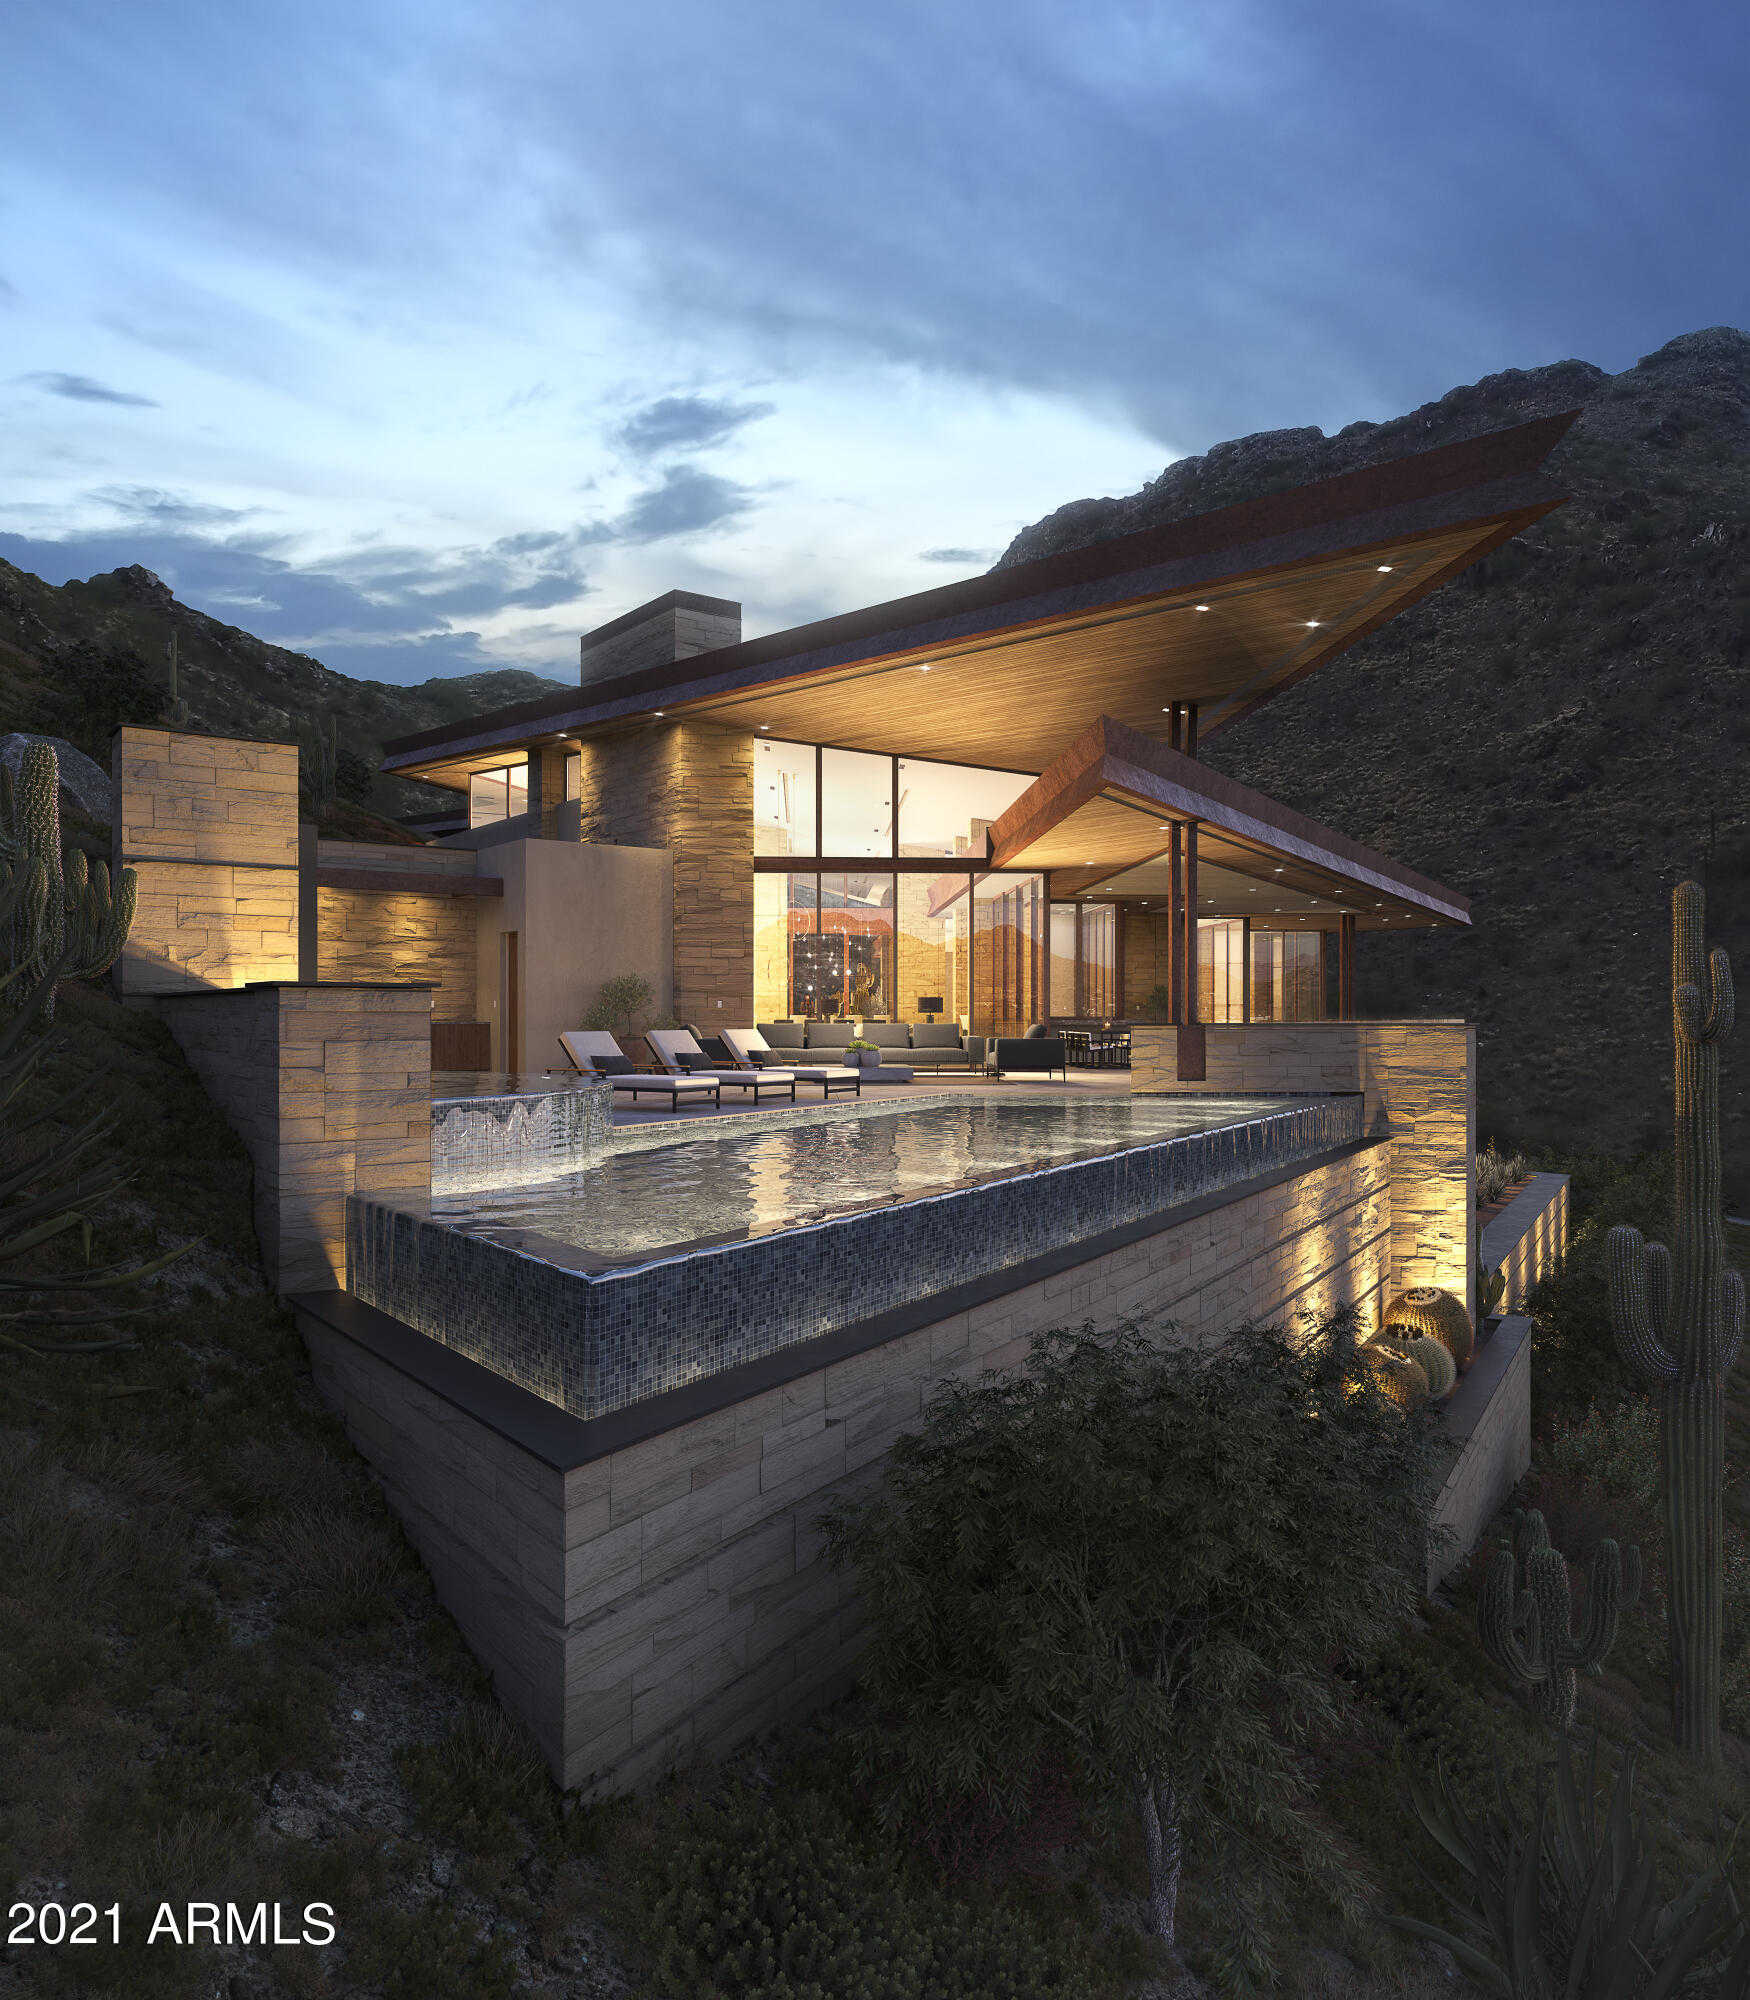 $9,988,000 - 5Br/7Ba - Home for Sale in Whispering Canyon Amd, Paradise Valley